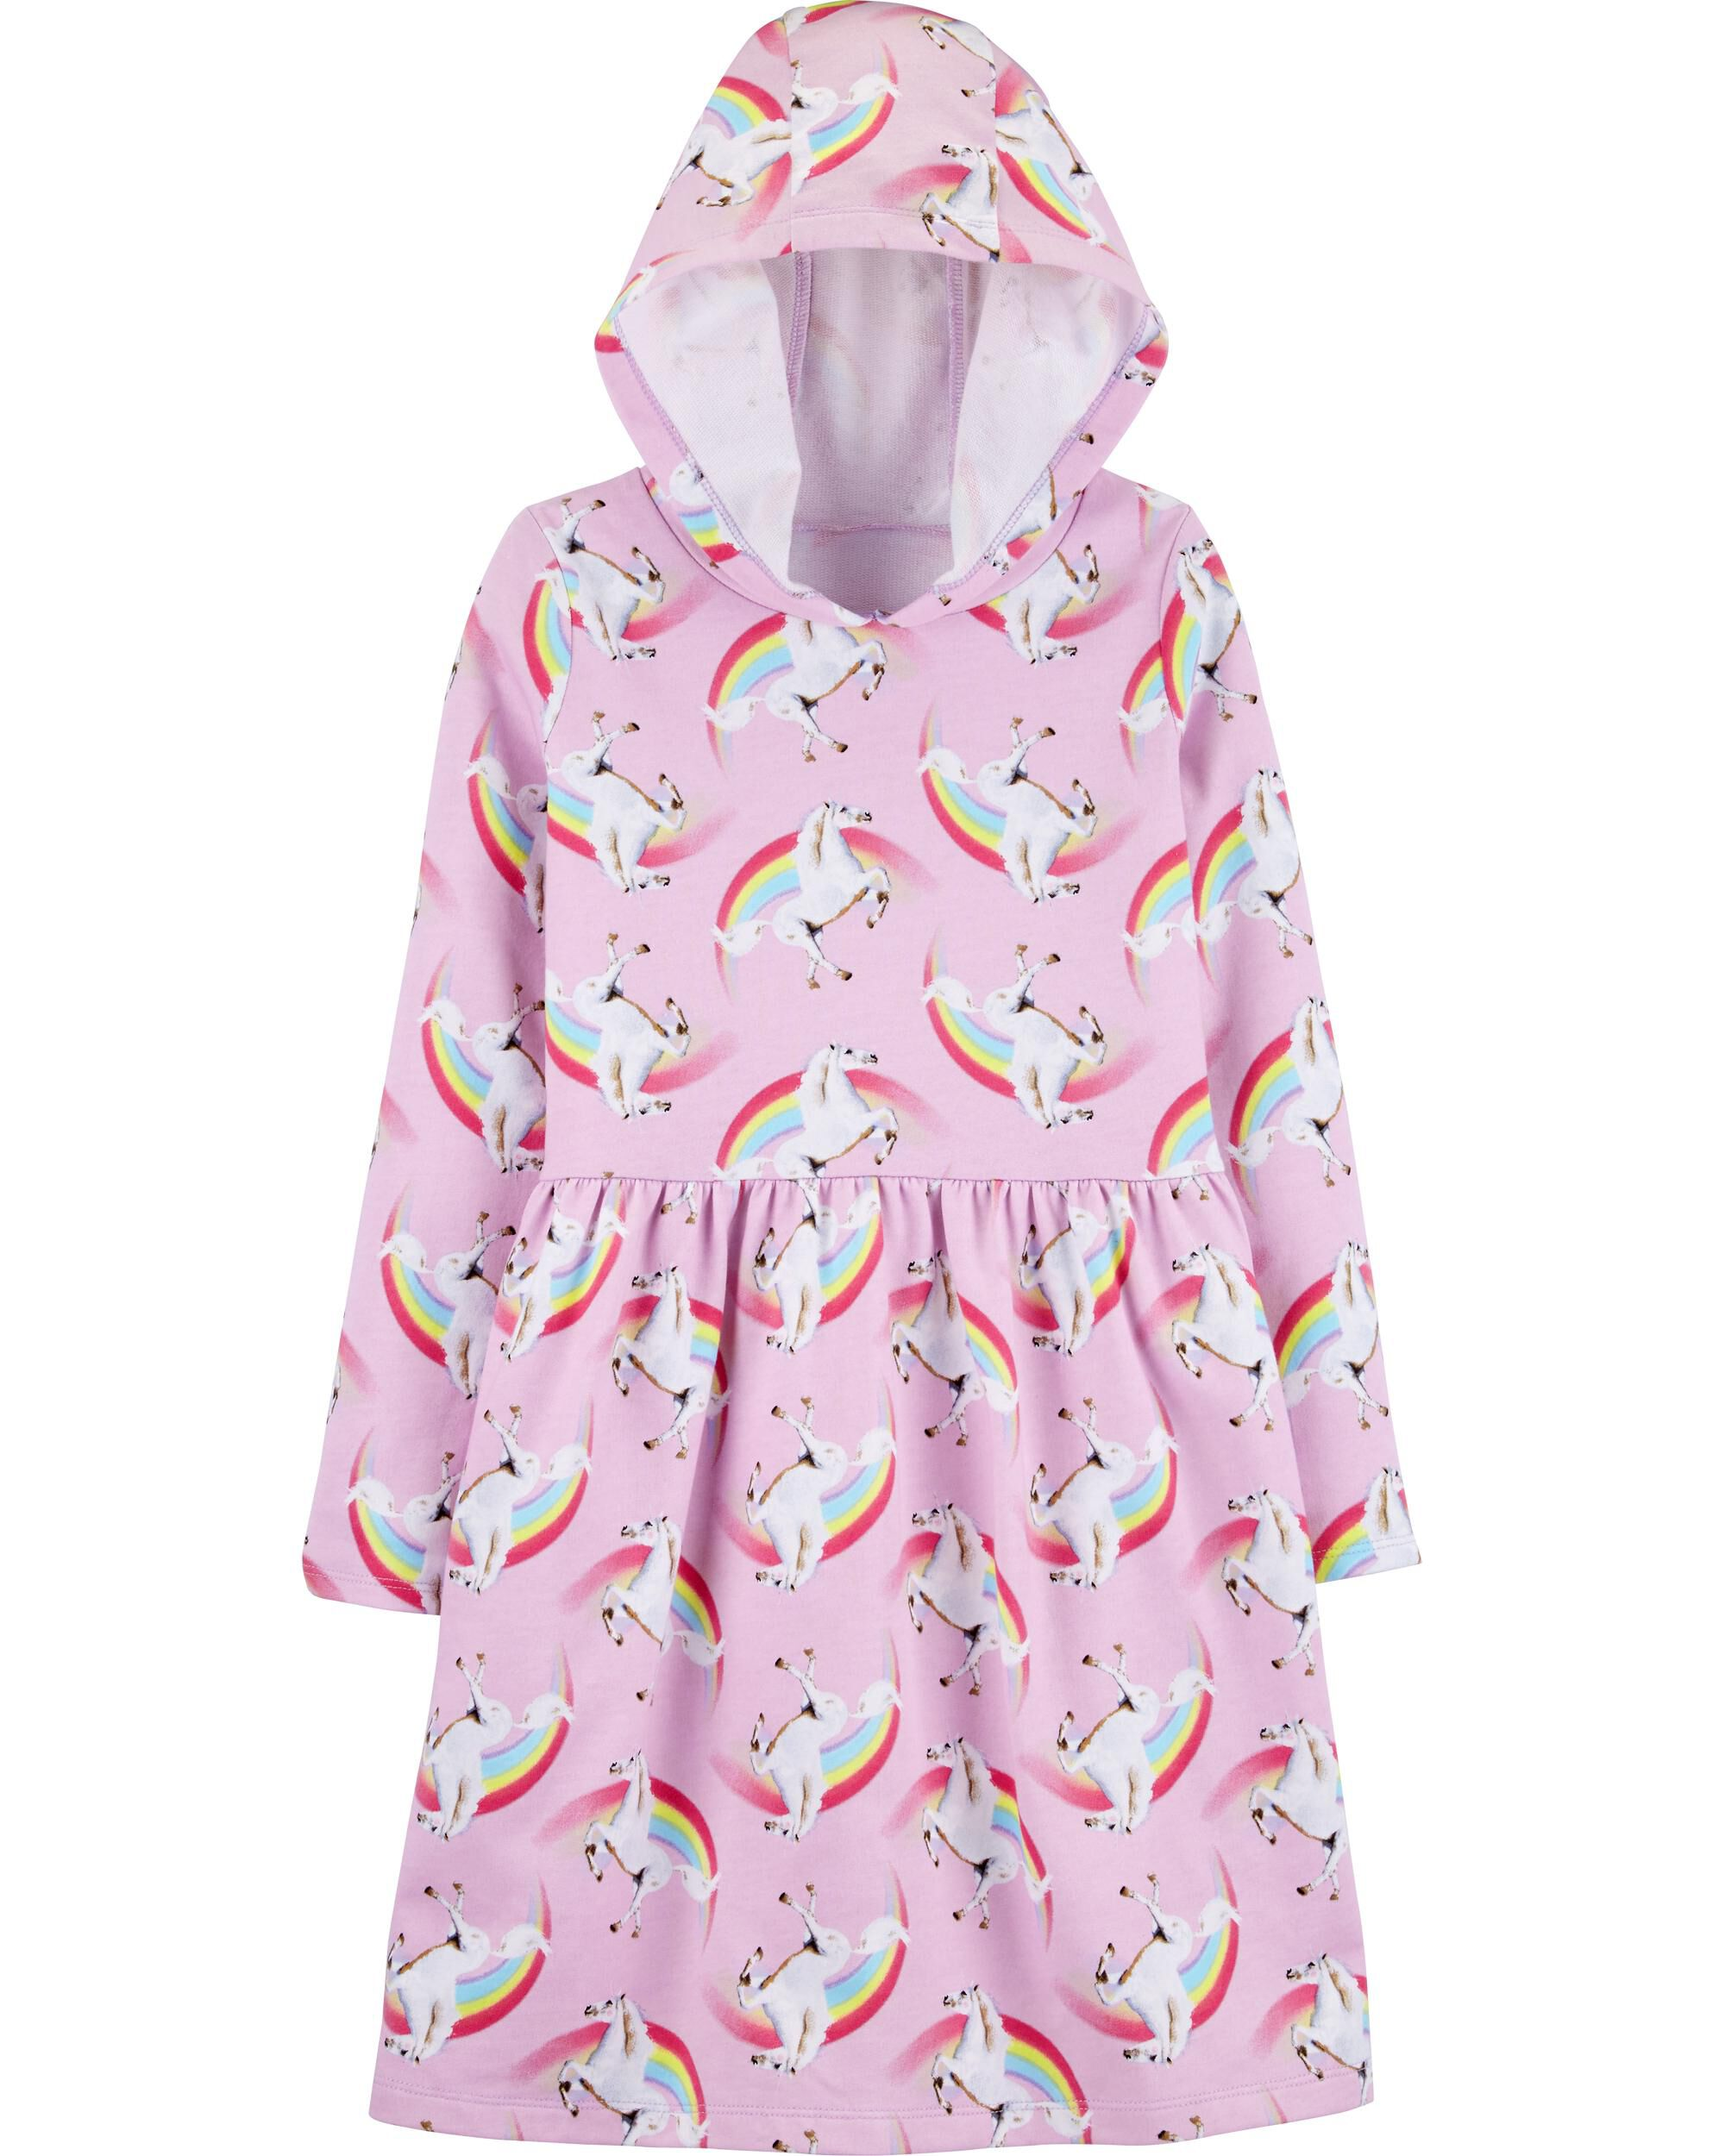 *CLEARANCE* Hooded Unicorn French Terry Dress